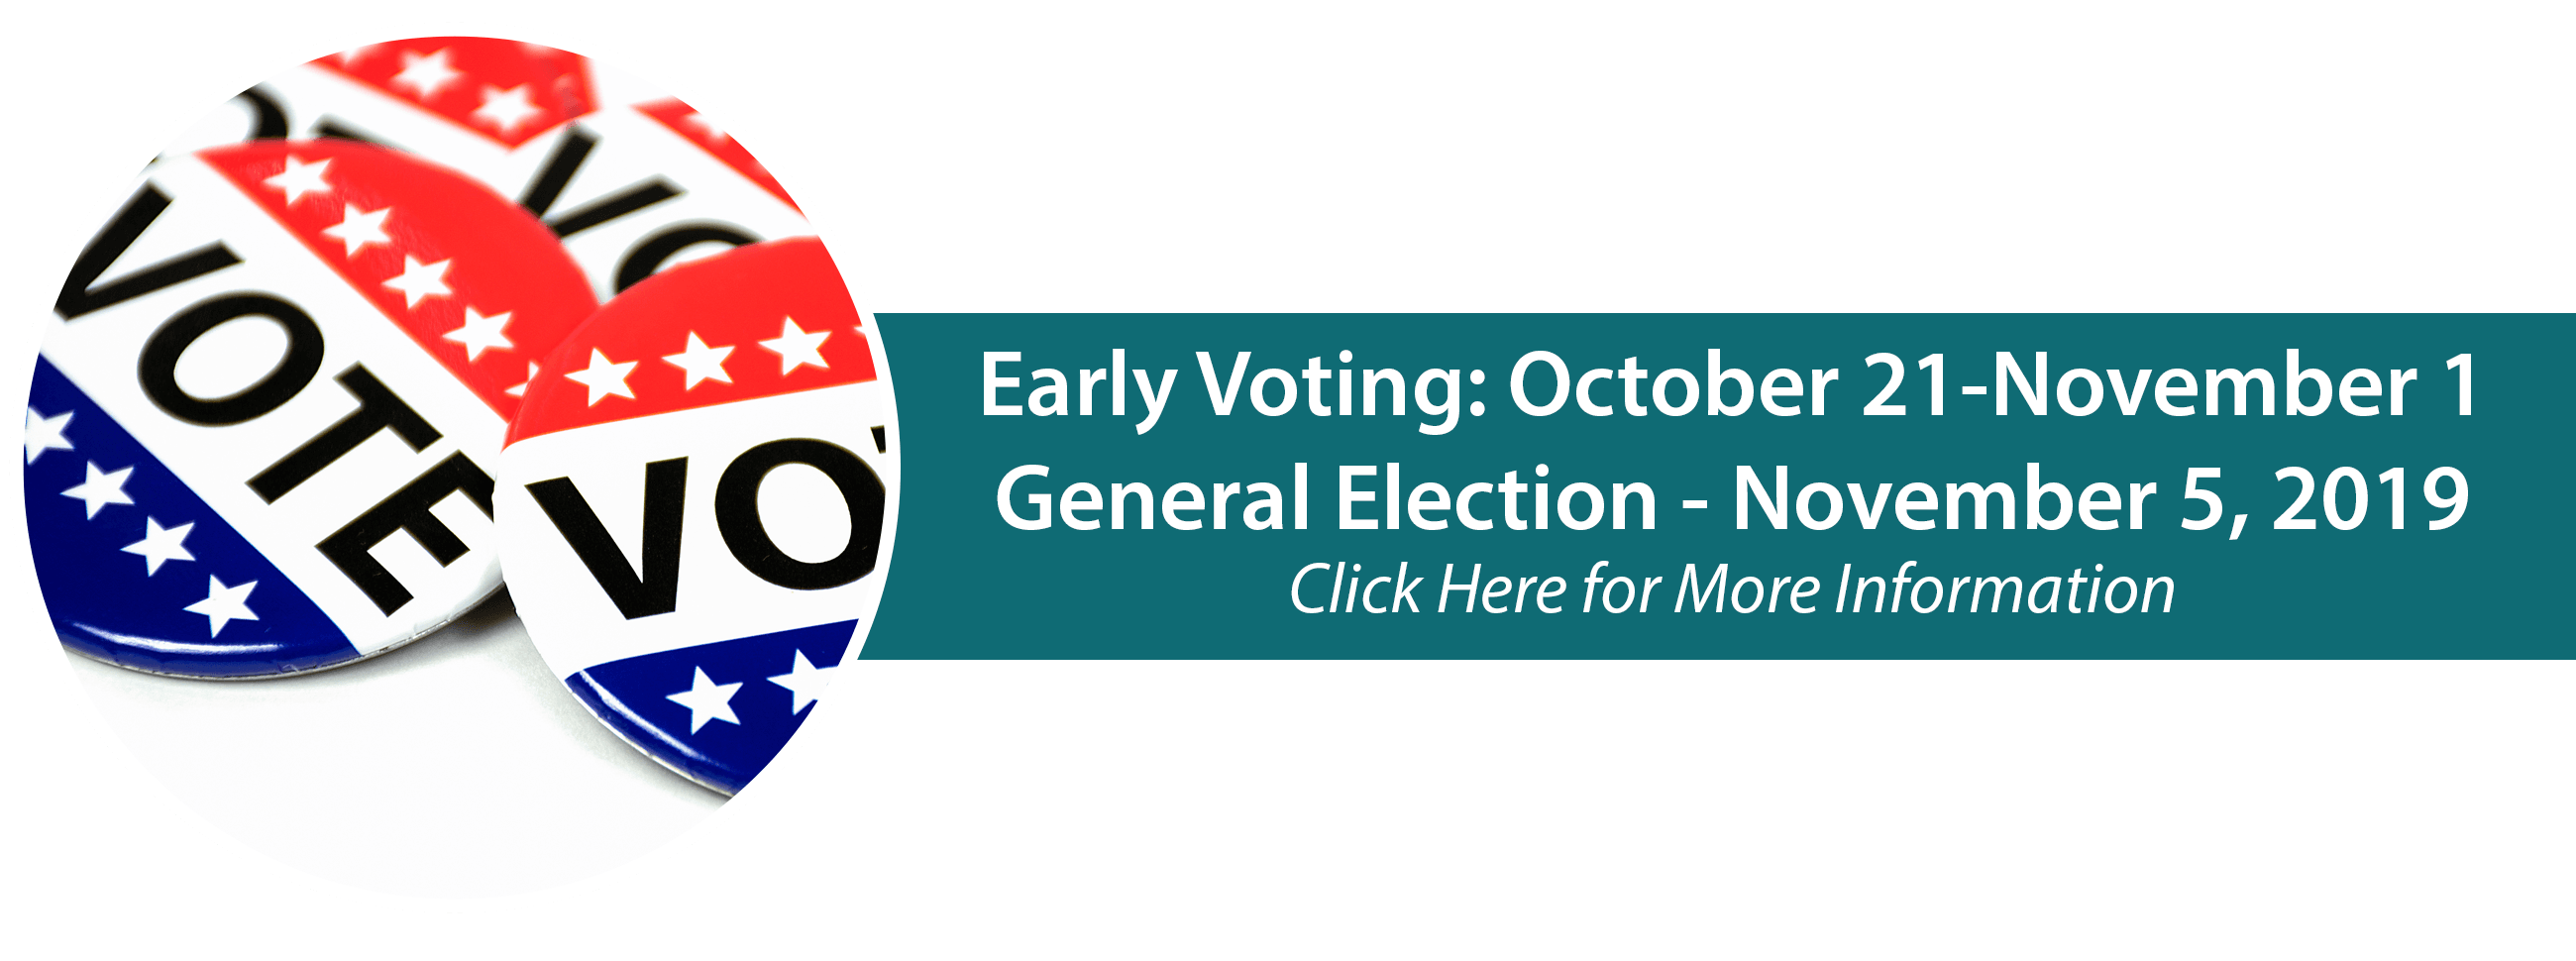 Click here for more information on elections